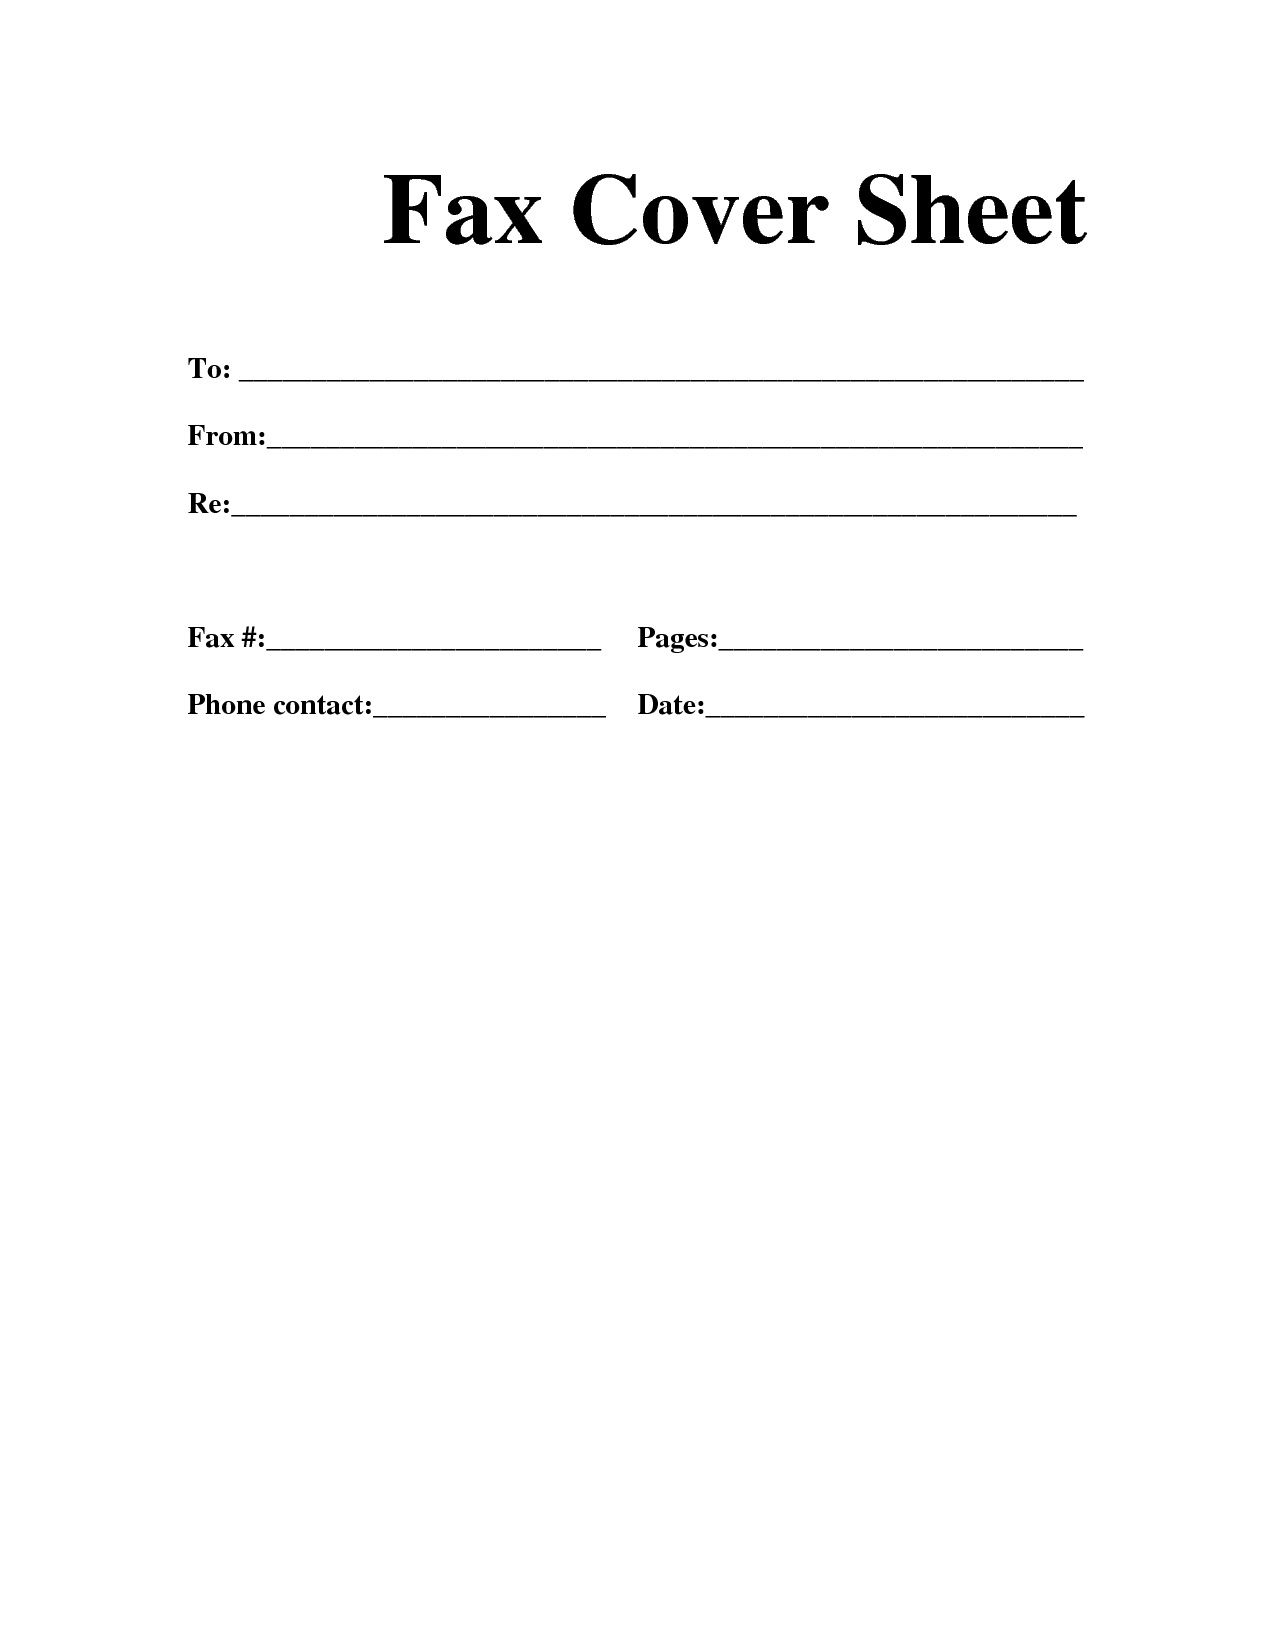 Blank Fax Cover Sheet Printable PDF – Fax Cover Sheet Template Word